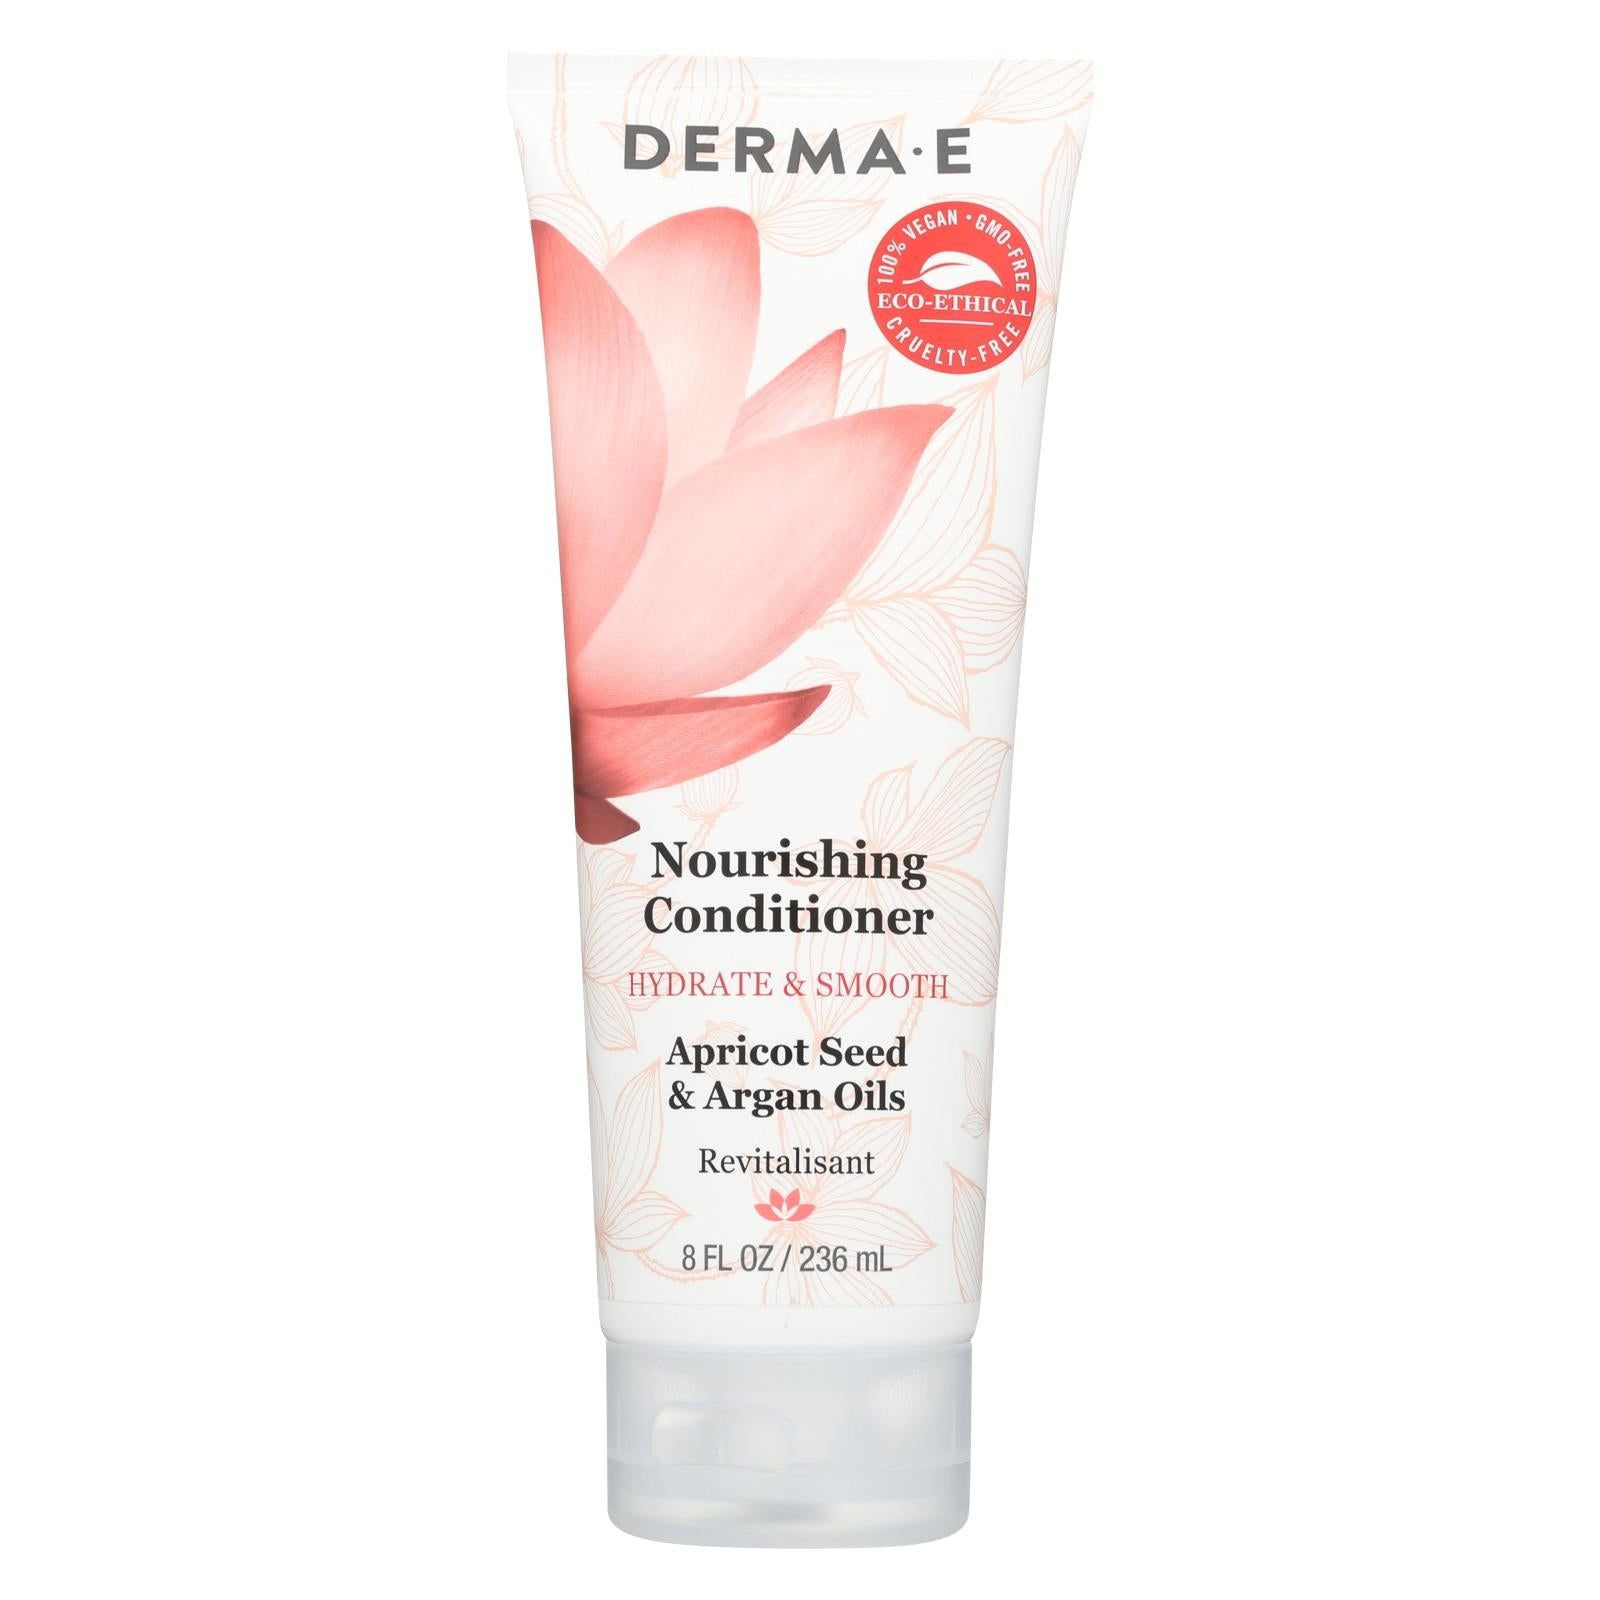 Buy Derma E Conditioner - Hydrate and Smooth - Nourish - 8 fl oz - Conditioner from Veroeco.com